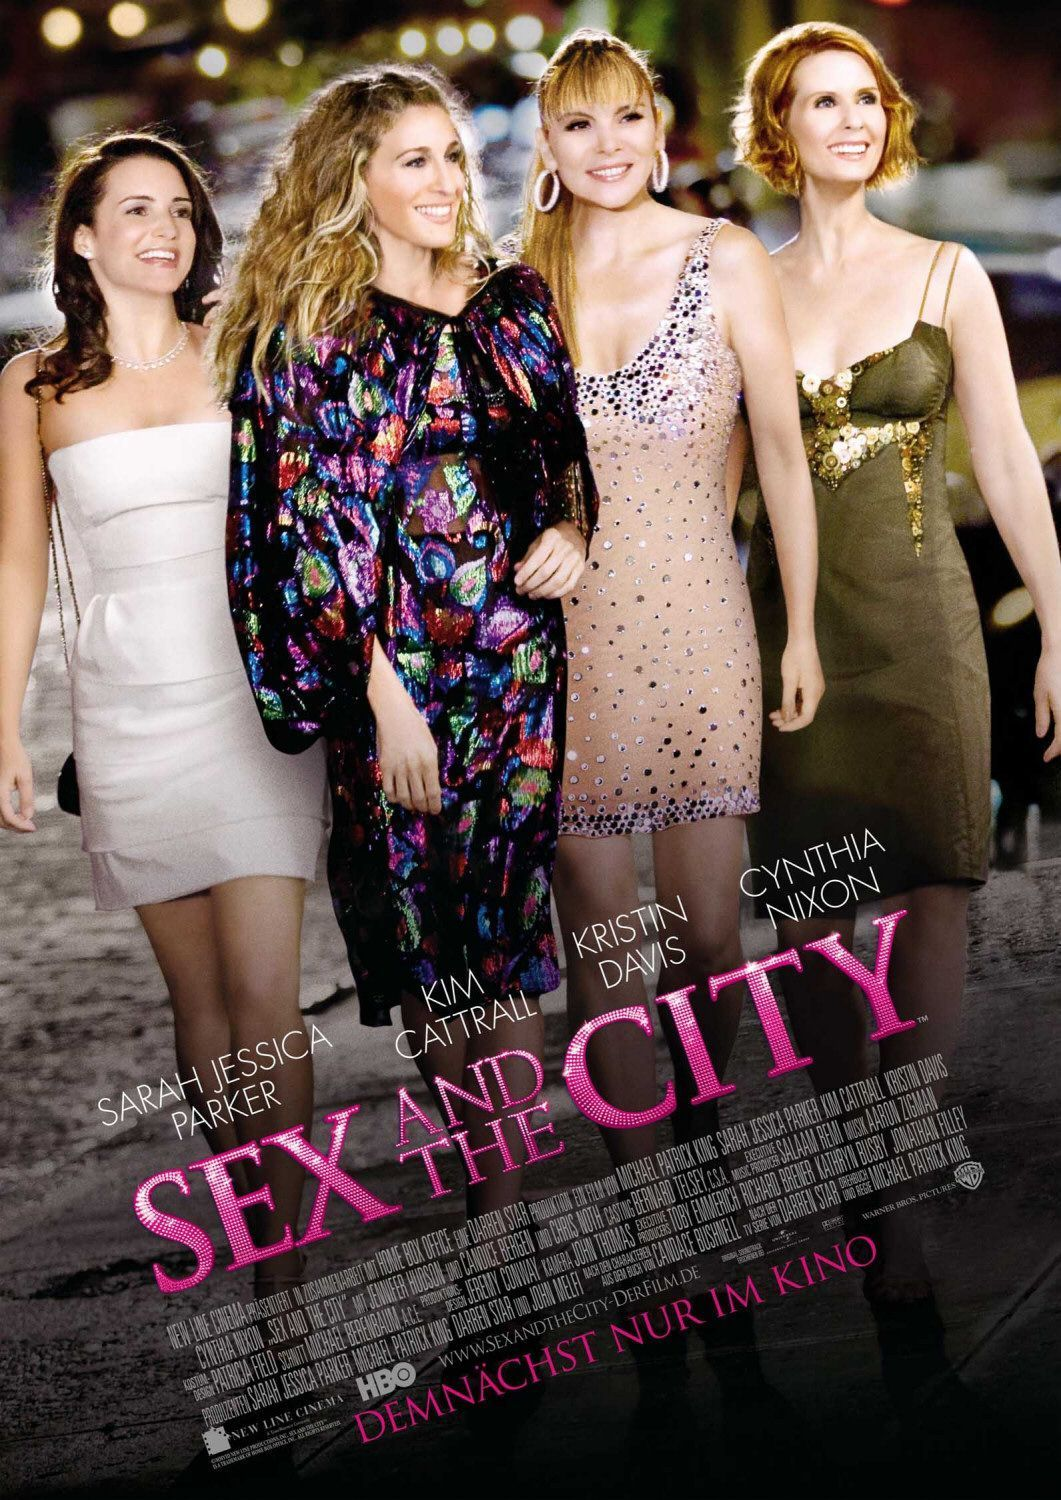 Sex and the city movie wiki